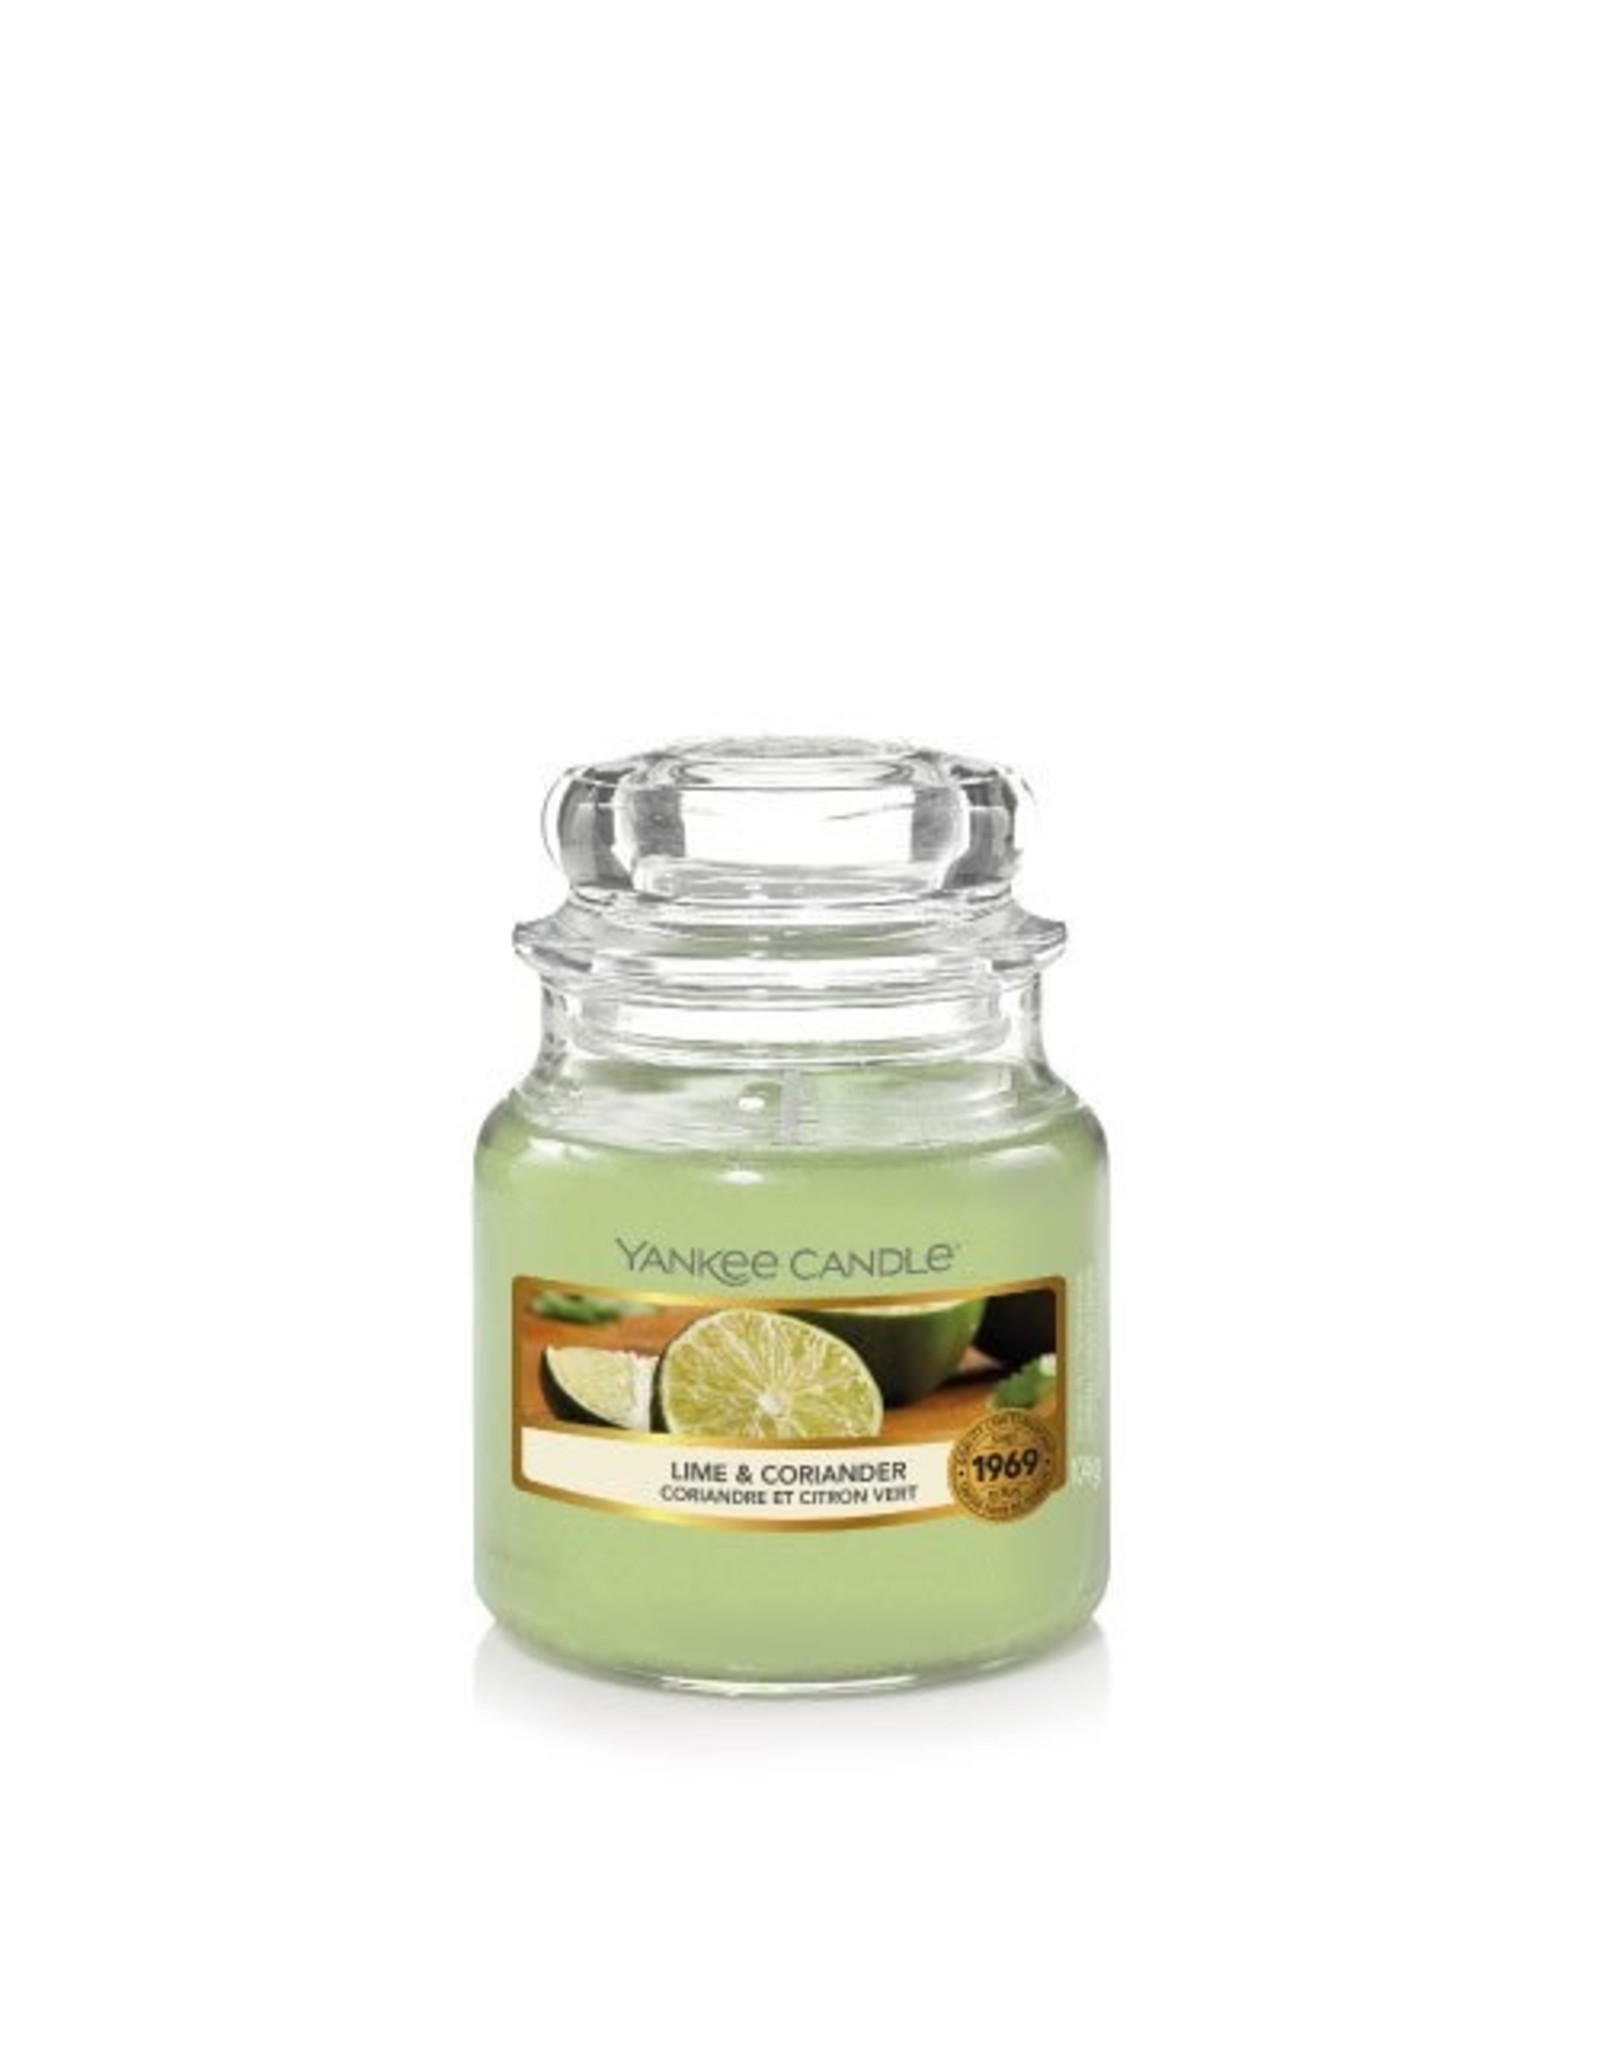 Yankee Candle Lime & Coriander Yankee Candle